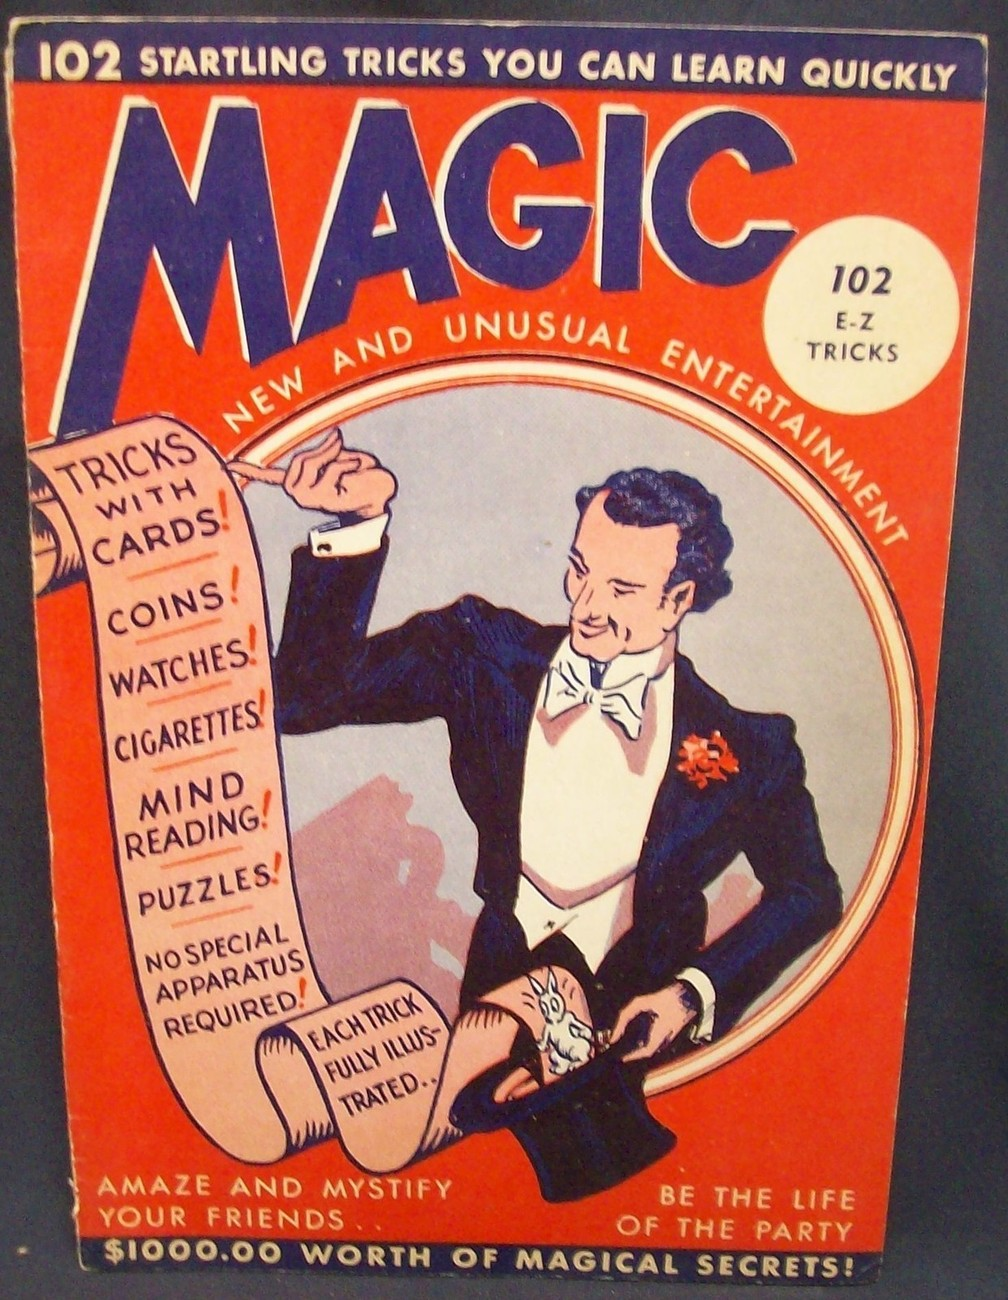 Magic 102 Startling Tricks You Can Lean